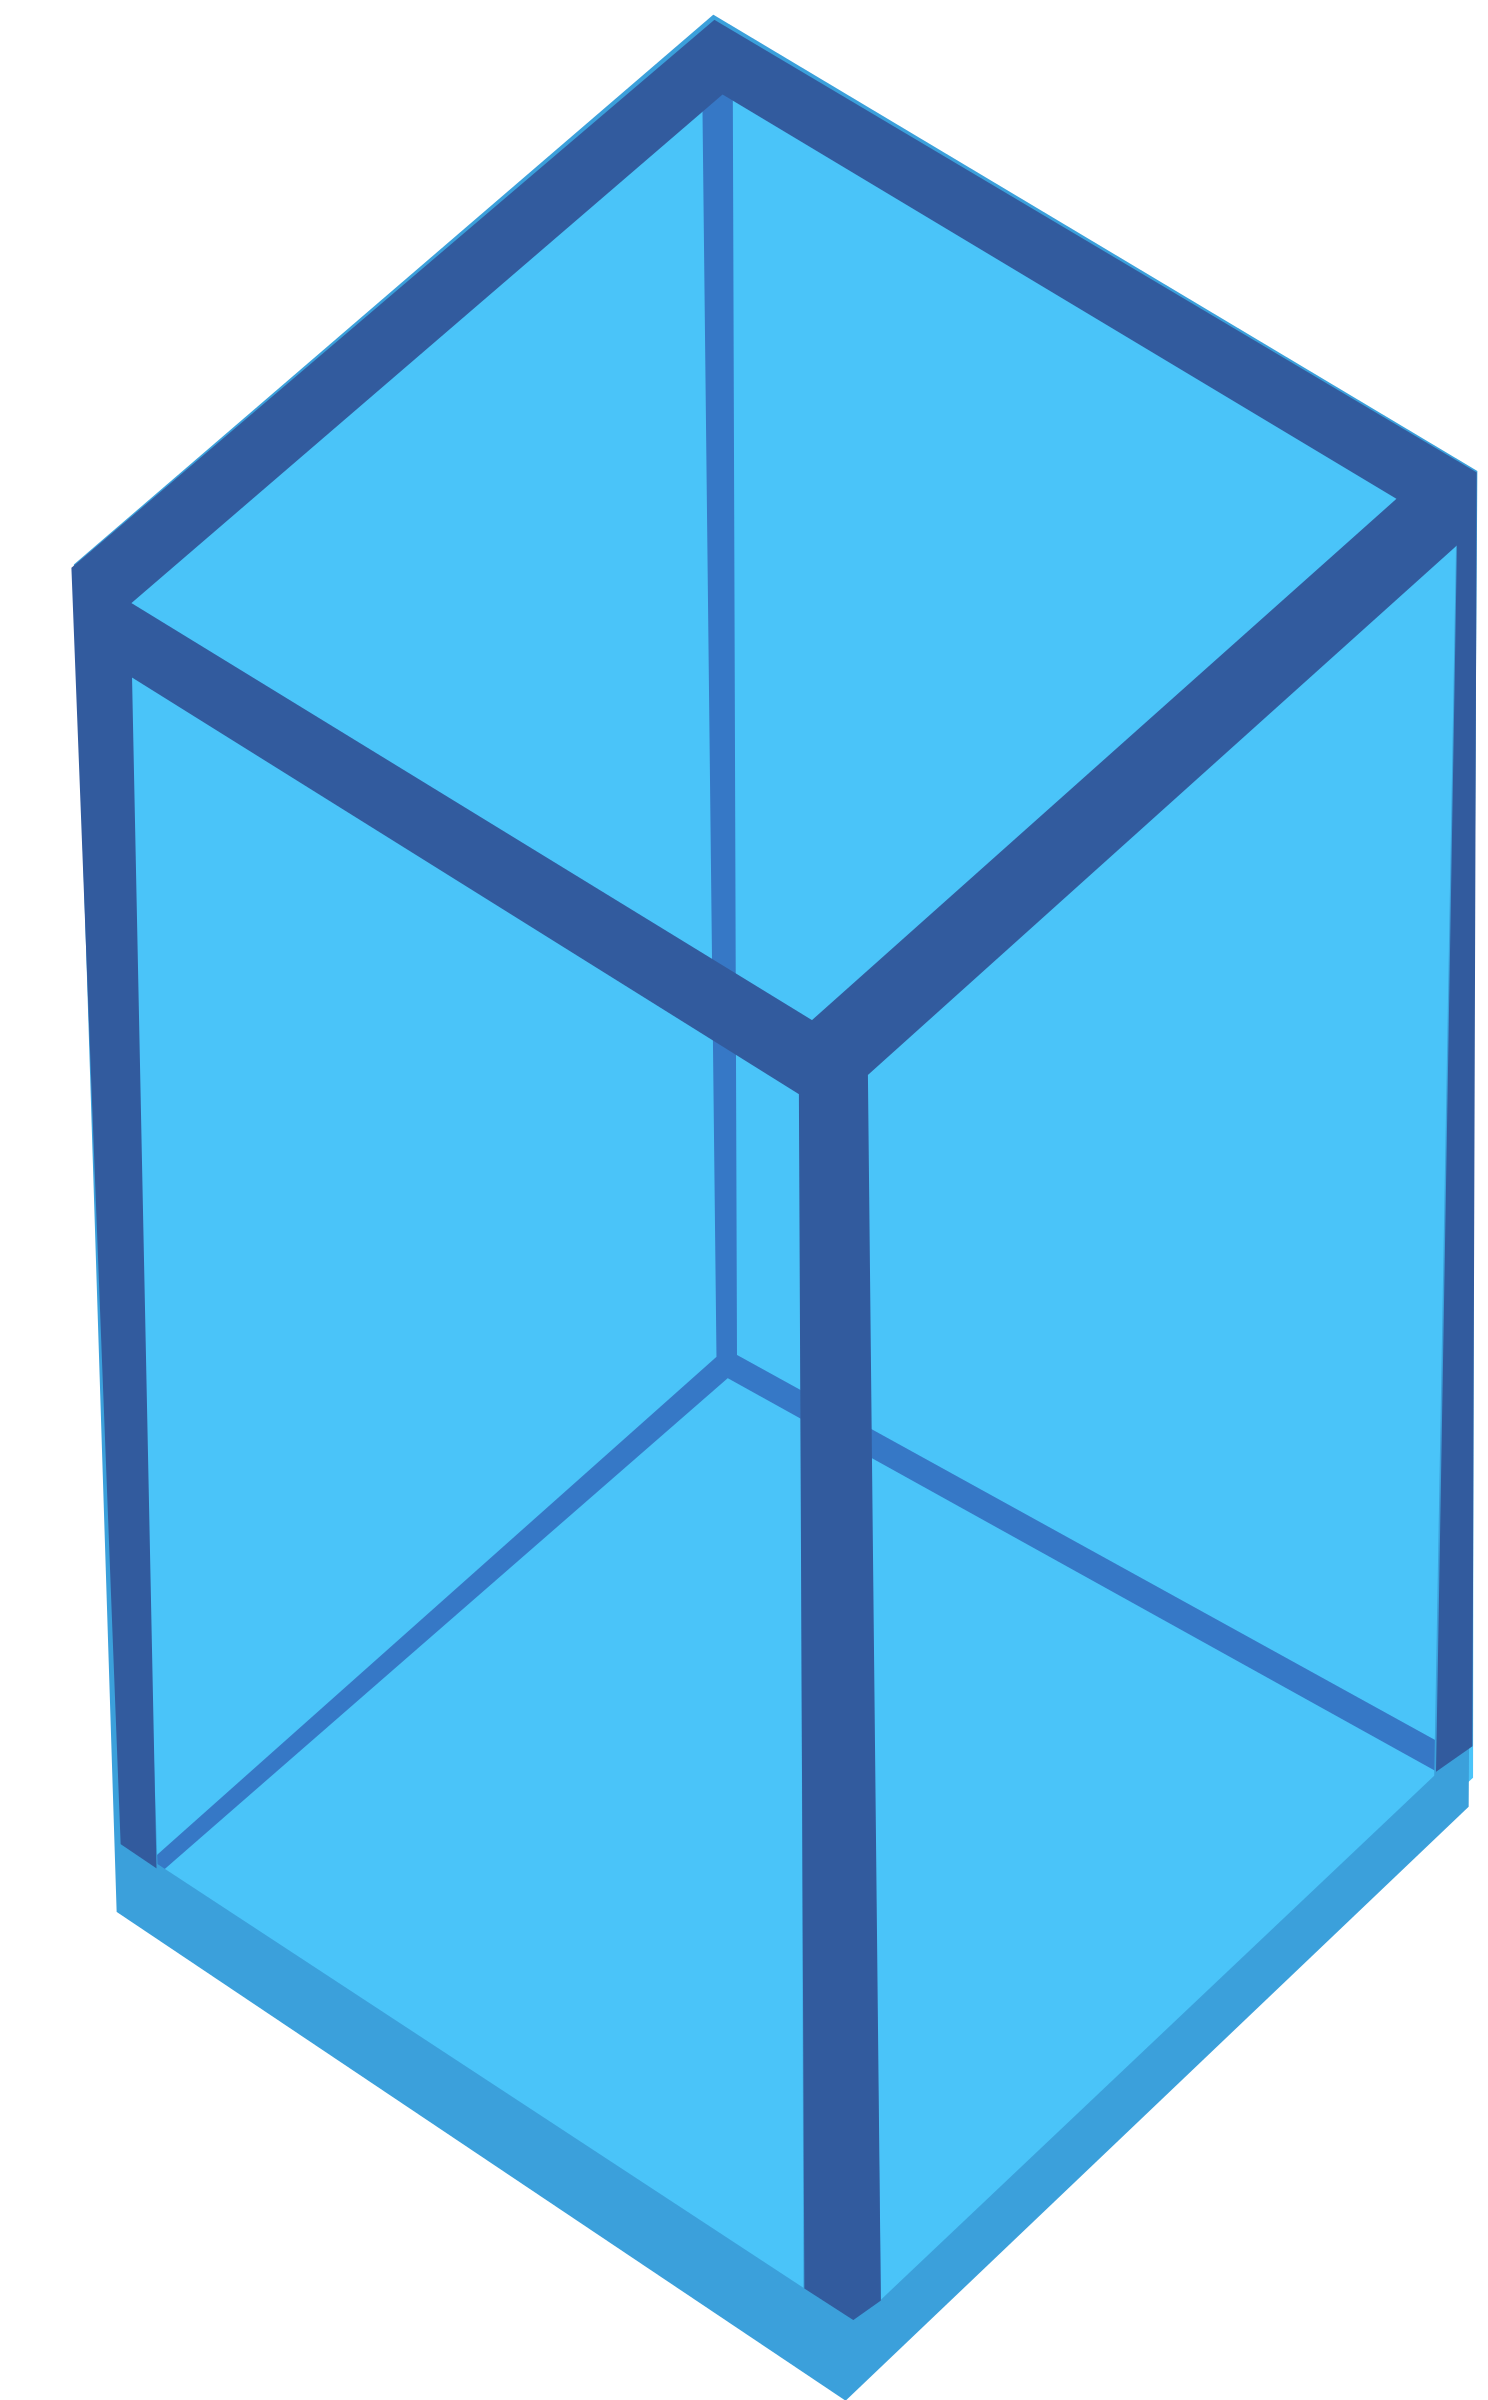 Cyan Transparent Cube by Rfc1394